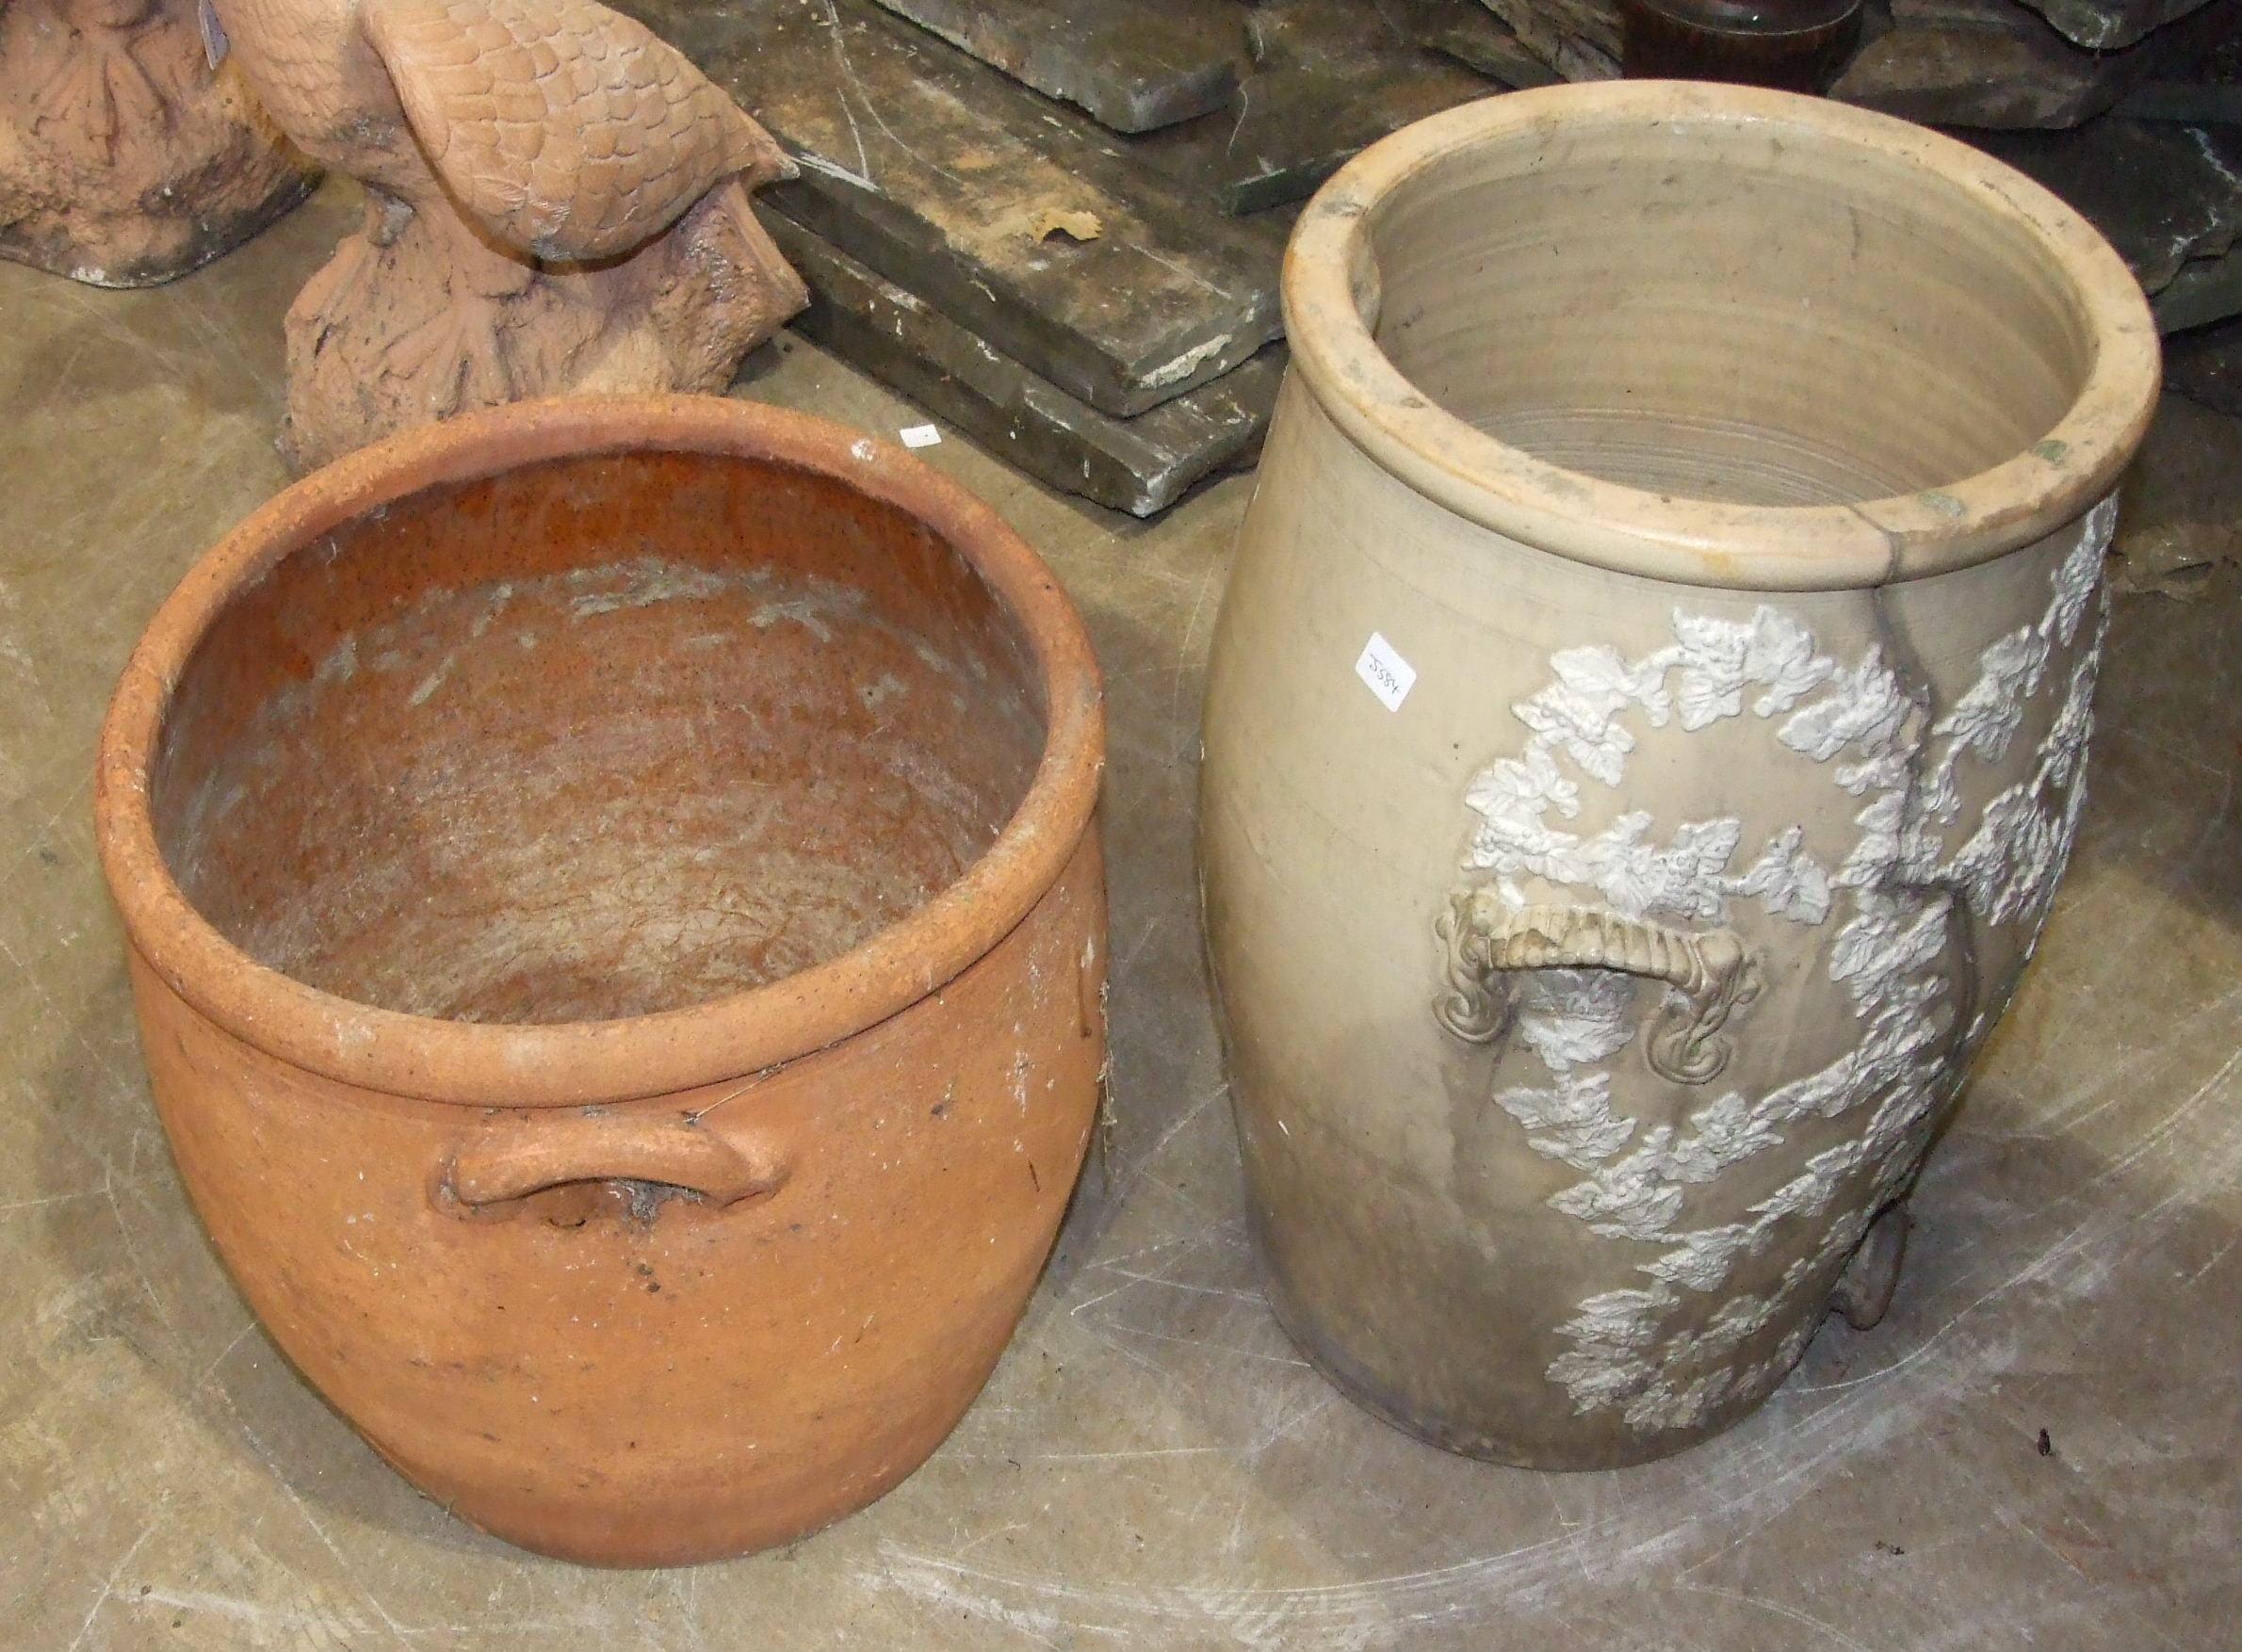 Lot 73 - A Lipscombe & Co. stone glazed water filter, incomplete, 55cm high and an earthenware garden pot,